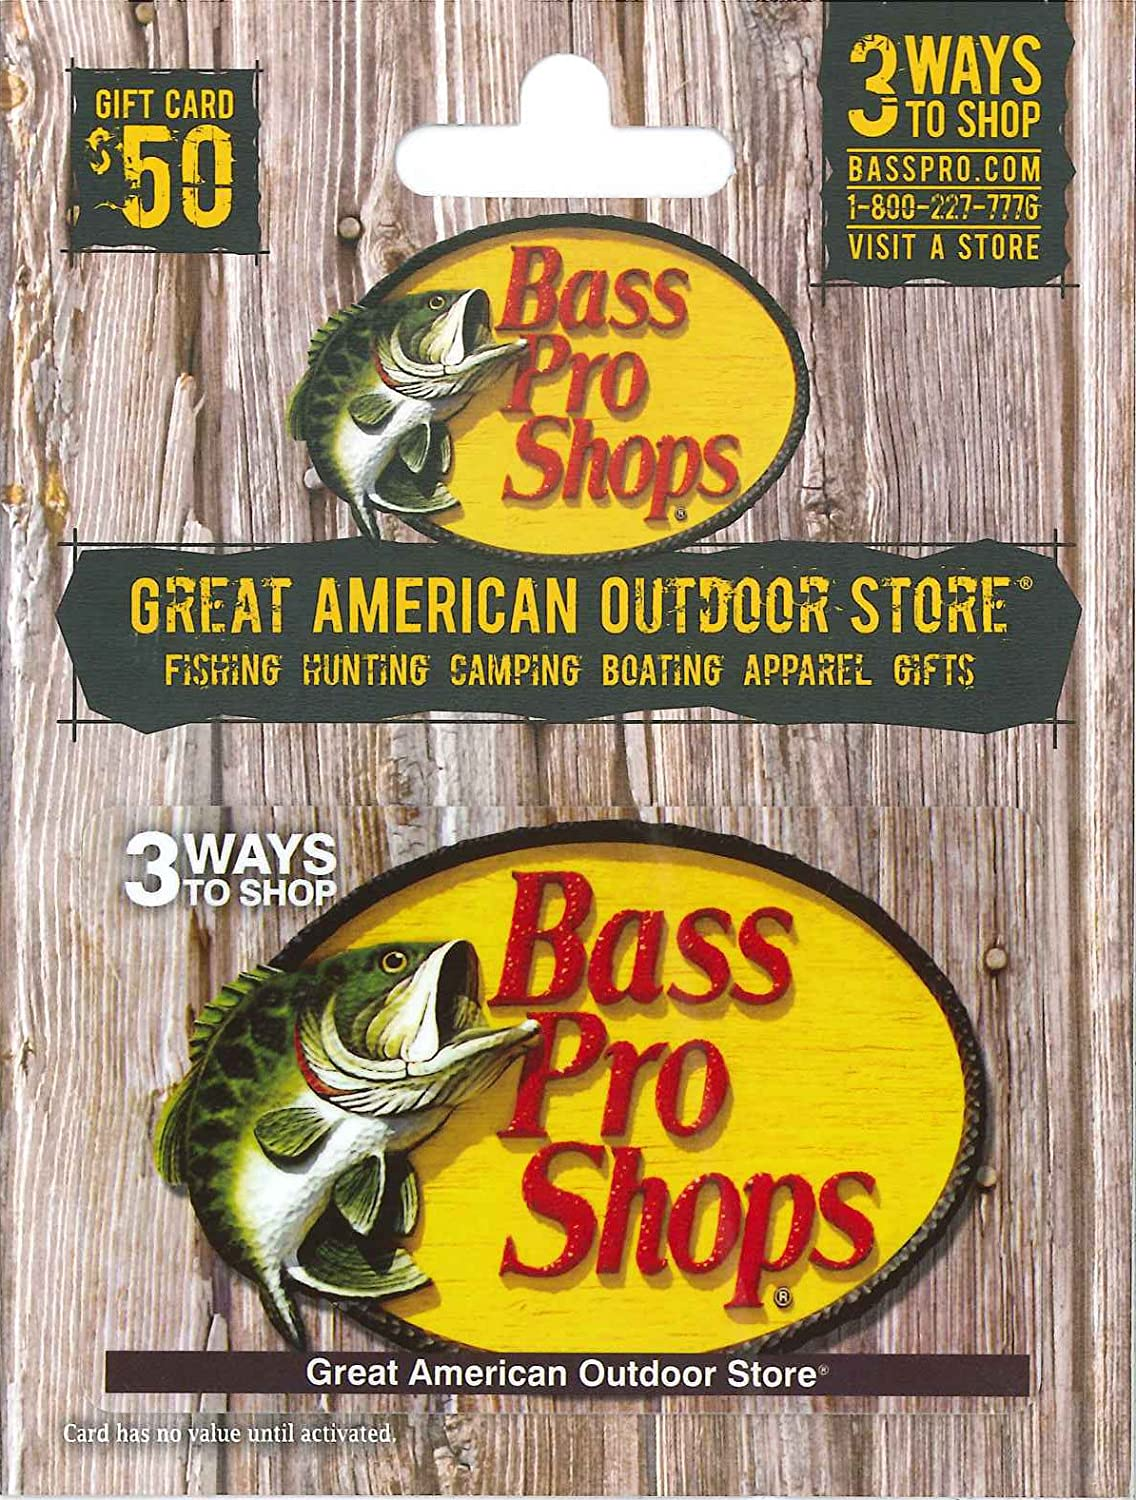 Amazon.com: Bass Pro Shops Holiday $25 Gift Card: Gift Cards